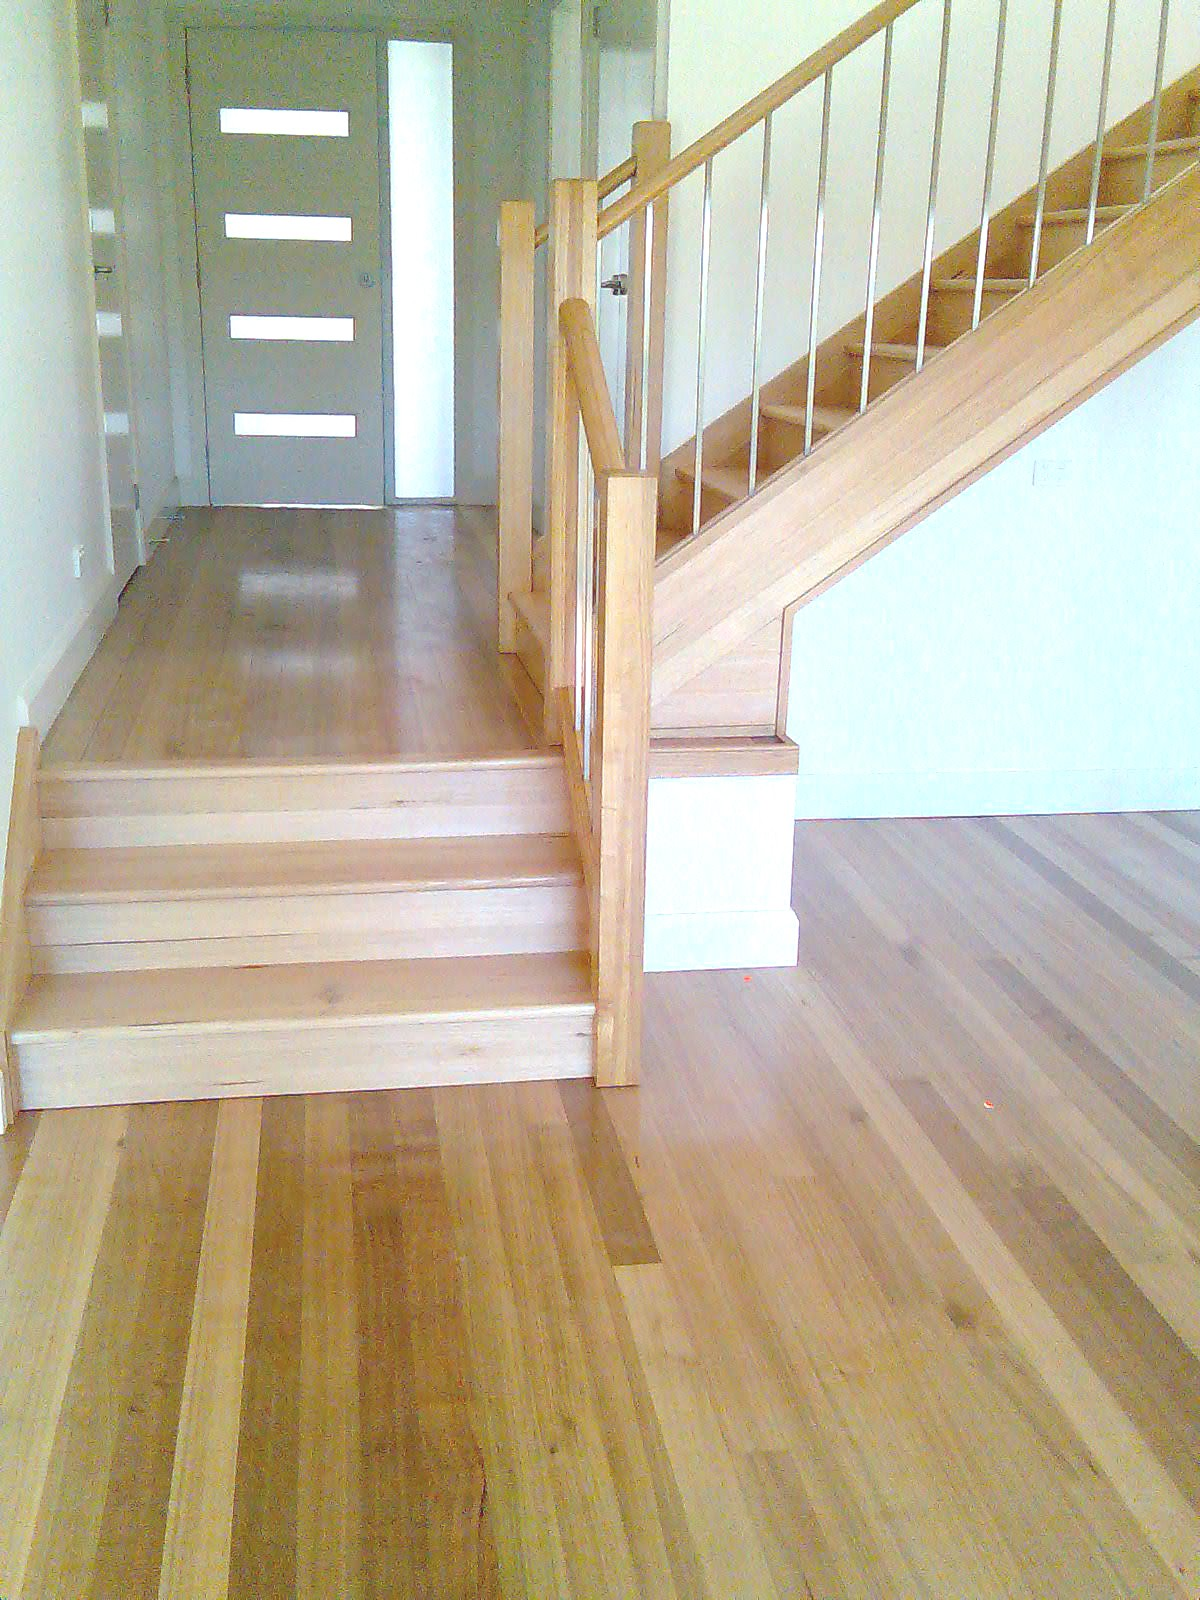 southern-blue-gum-flooring-meeting-tasmanian-oak-staircase1